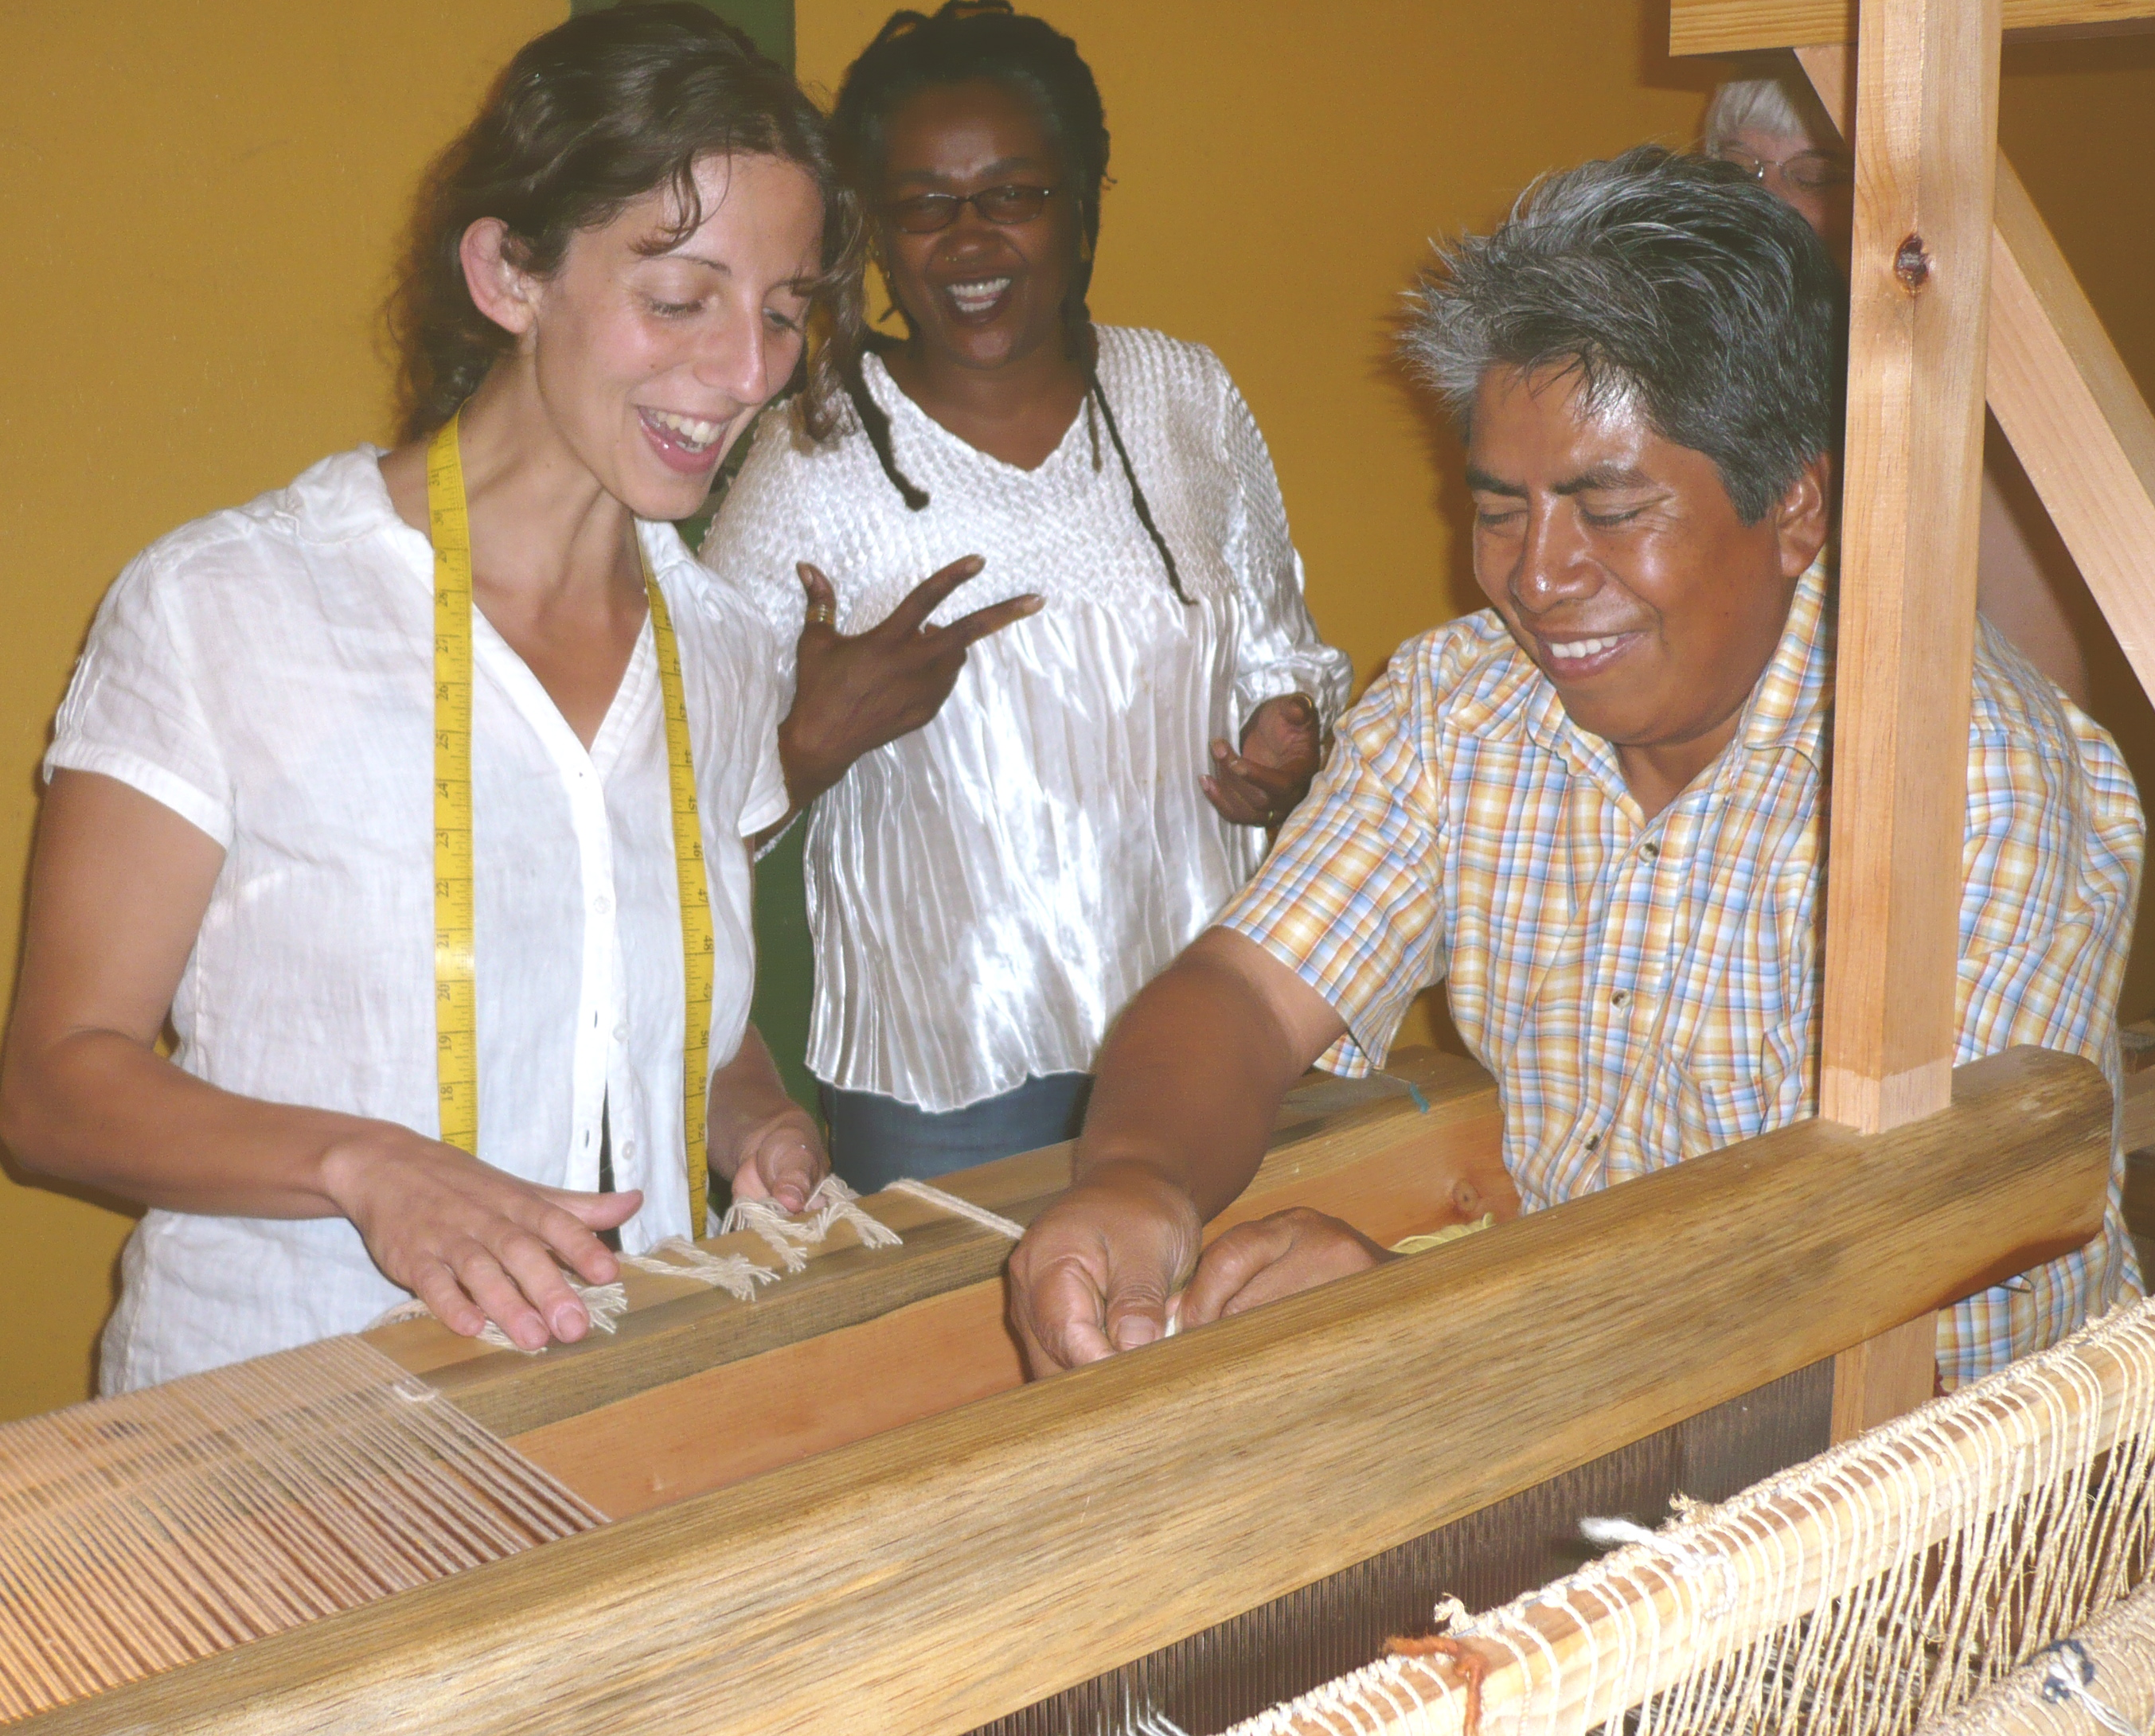 Students with Federico at the tapestry loom